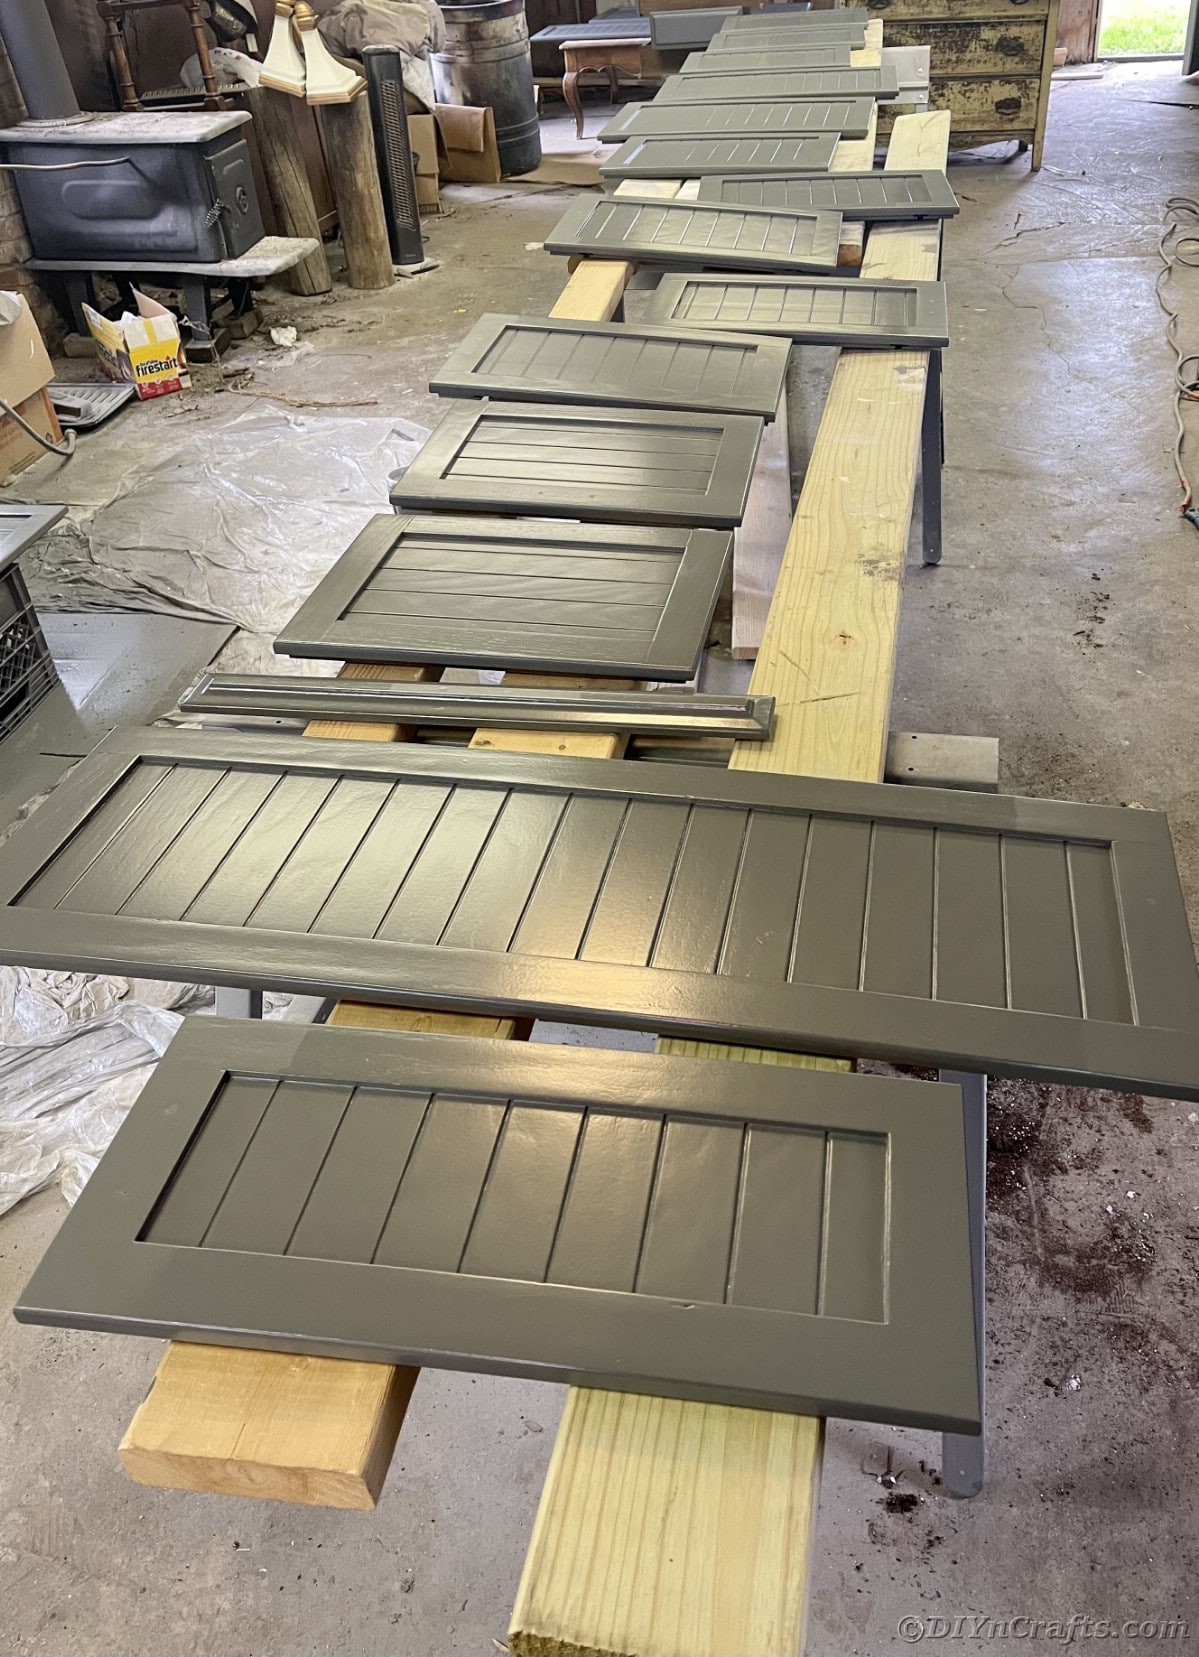 Gray shutter door cabinets laying on top of 2x4s